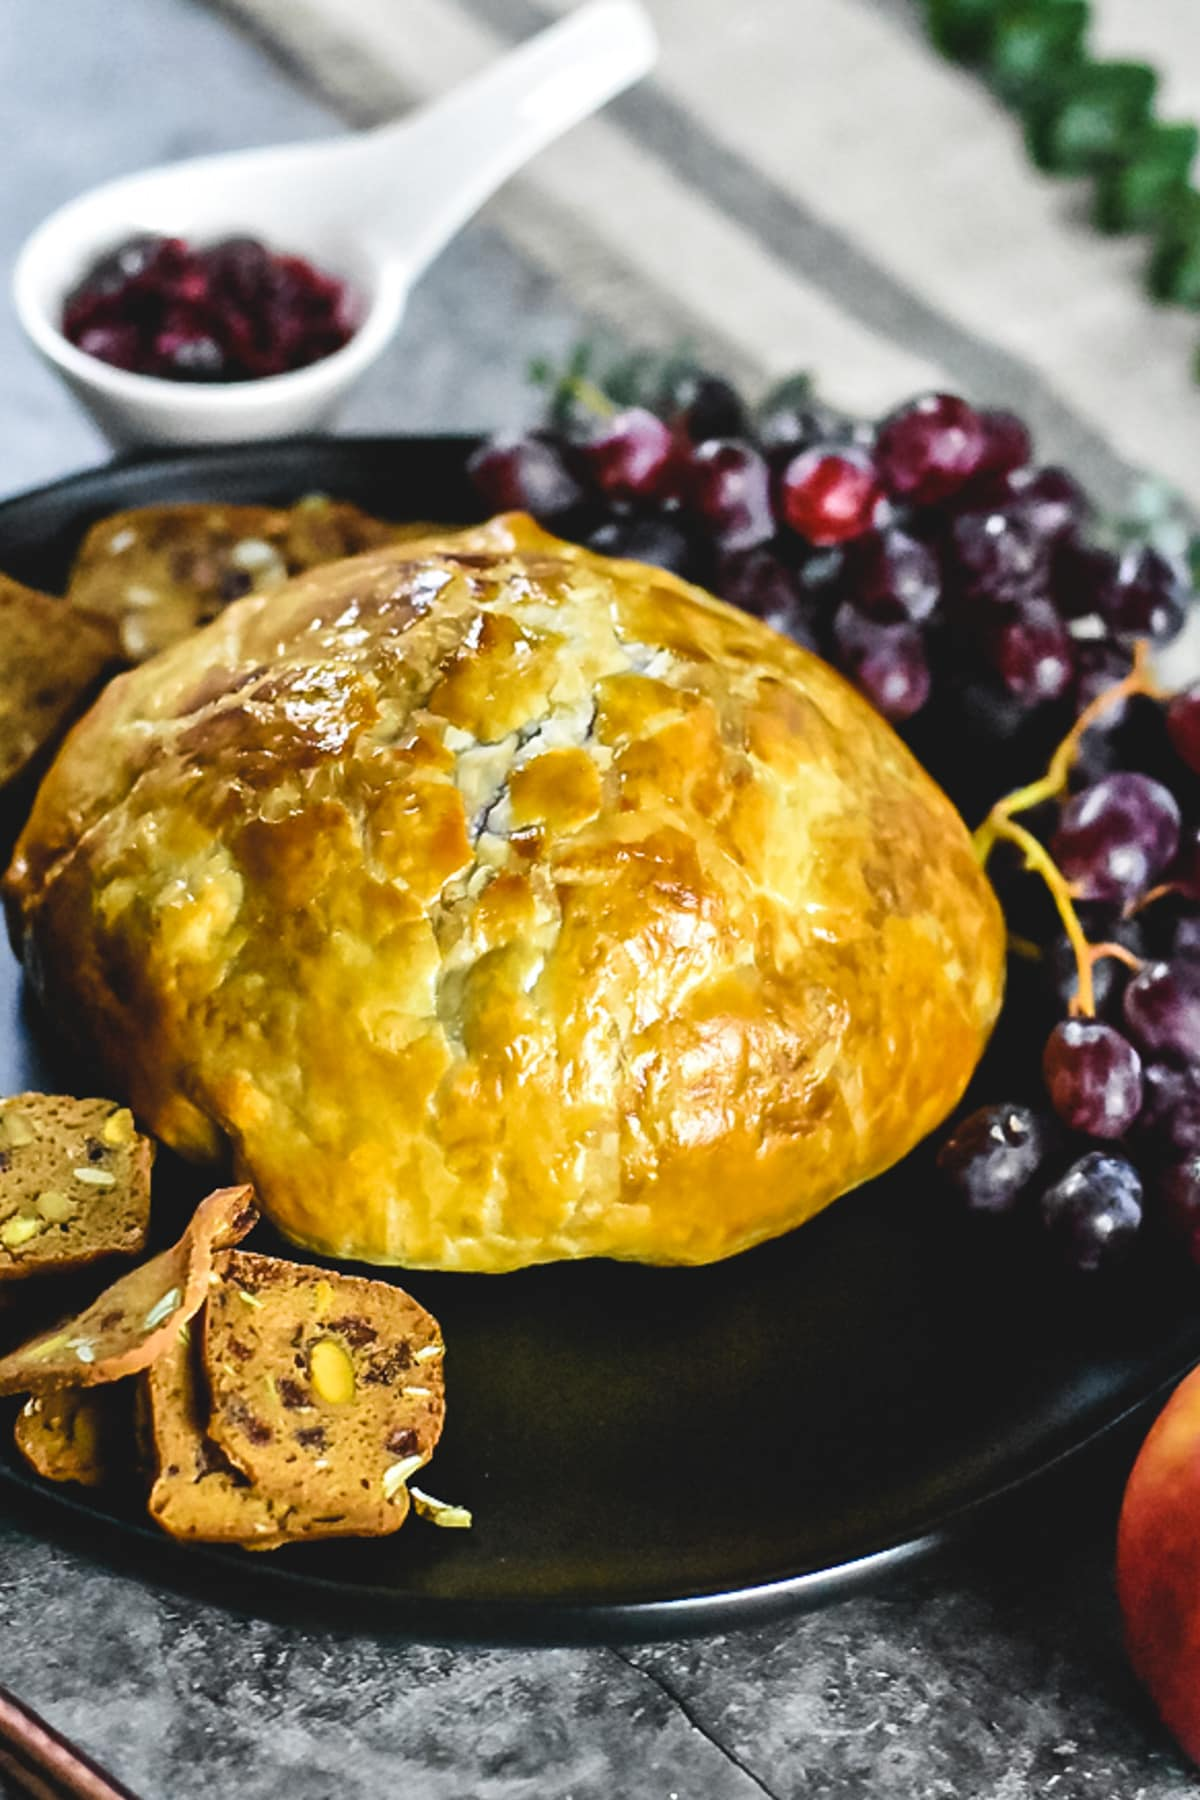 Baked brie in puff pastry served on a black plate with grapes and crackers